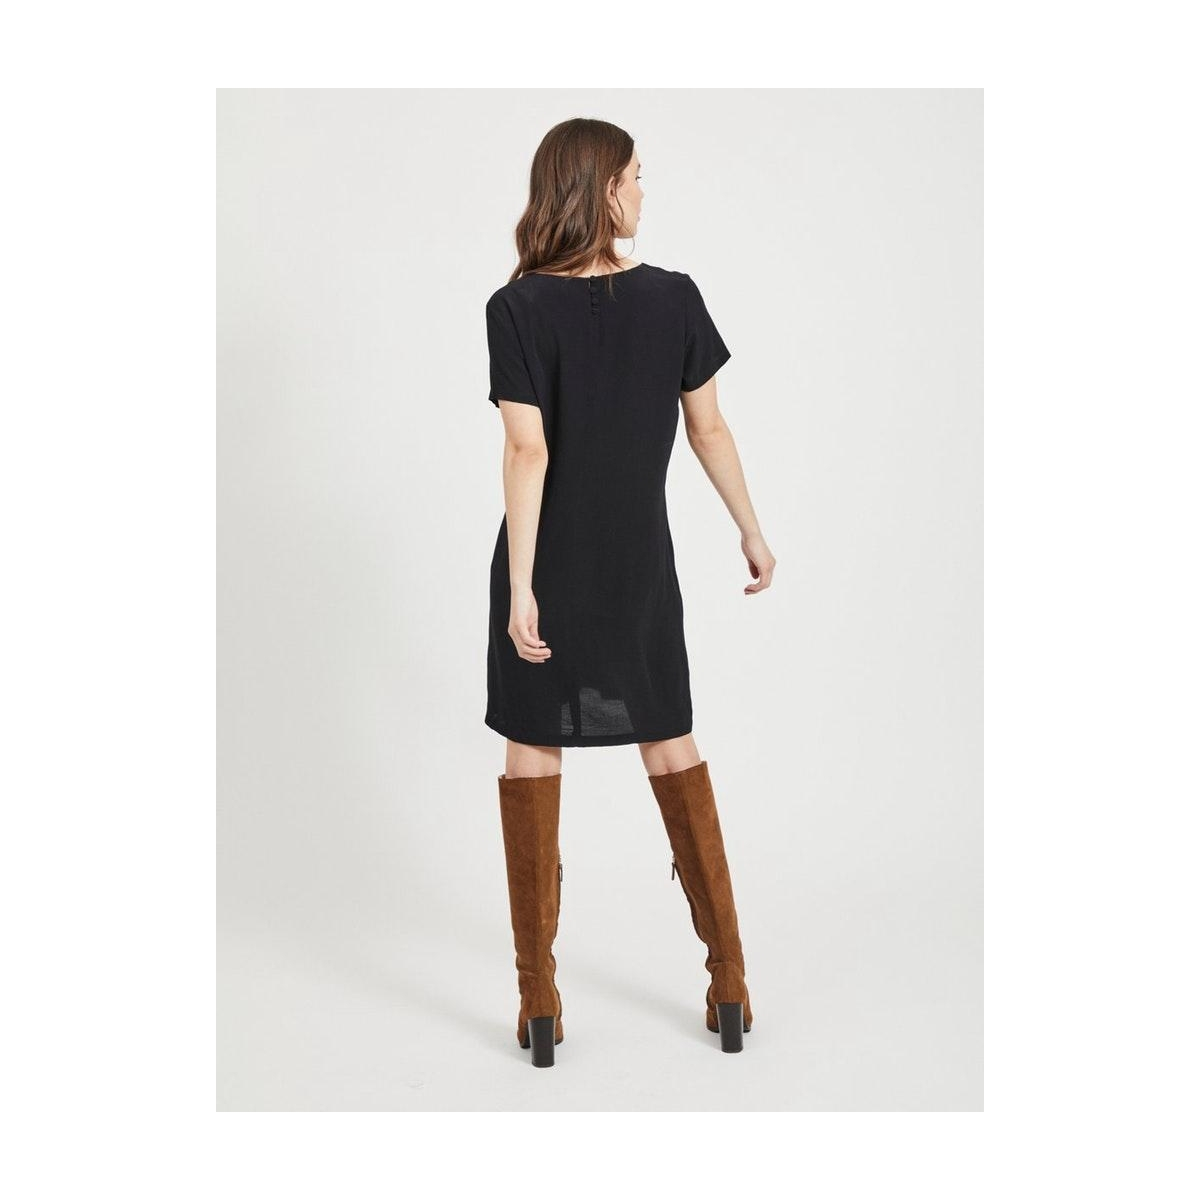 viprimera s/s dress-noos 14054650 vila jurk black